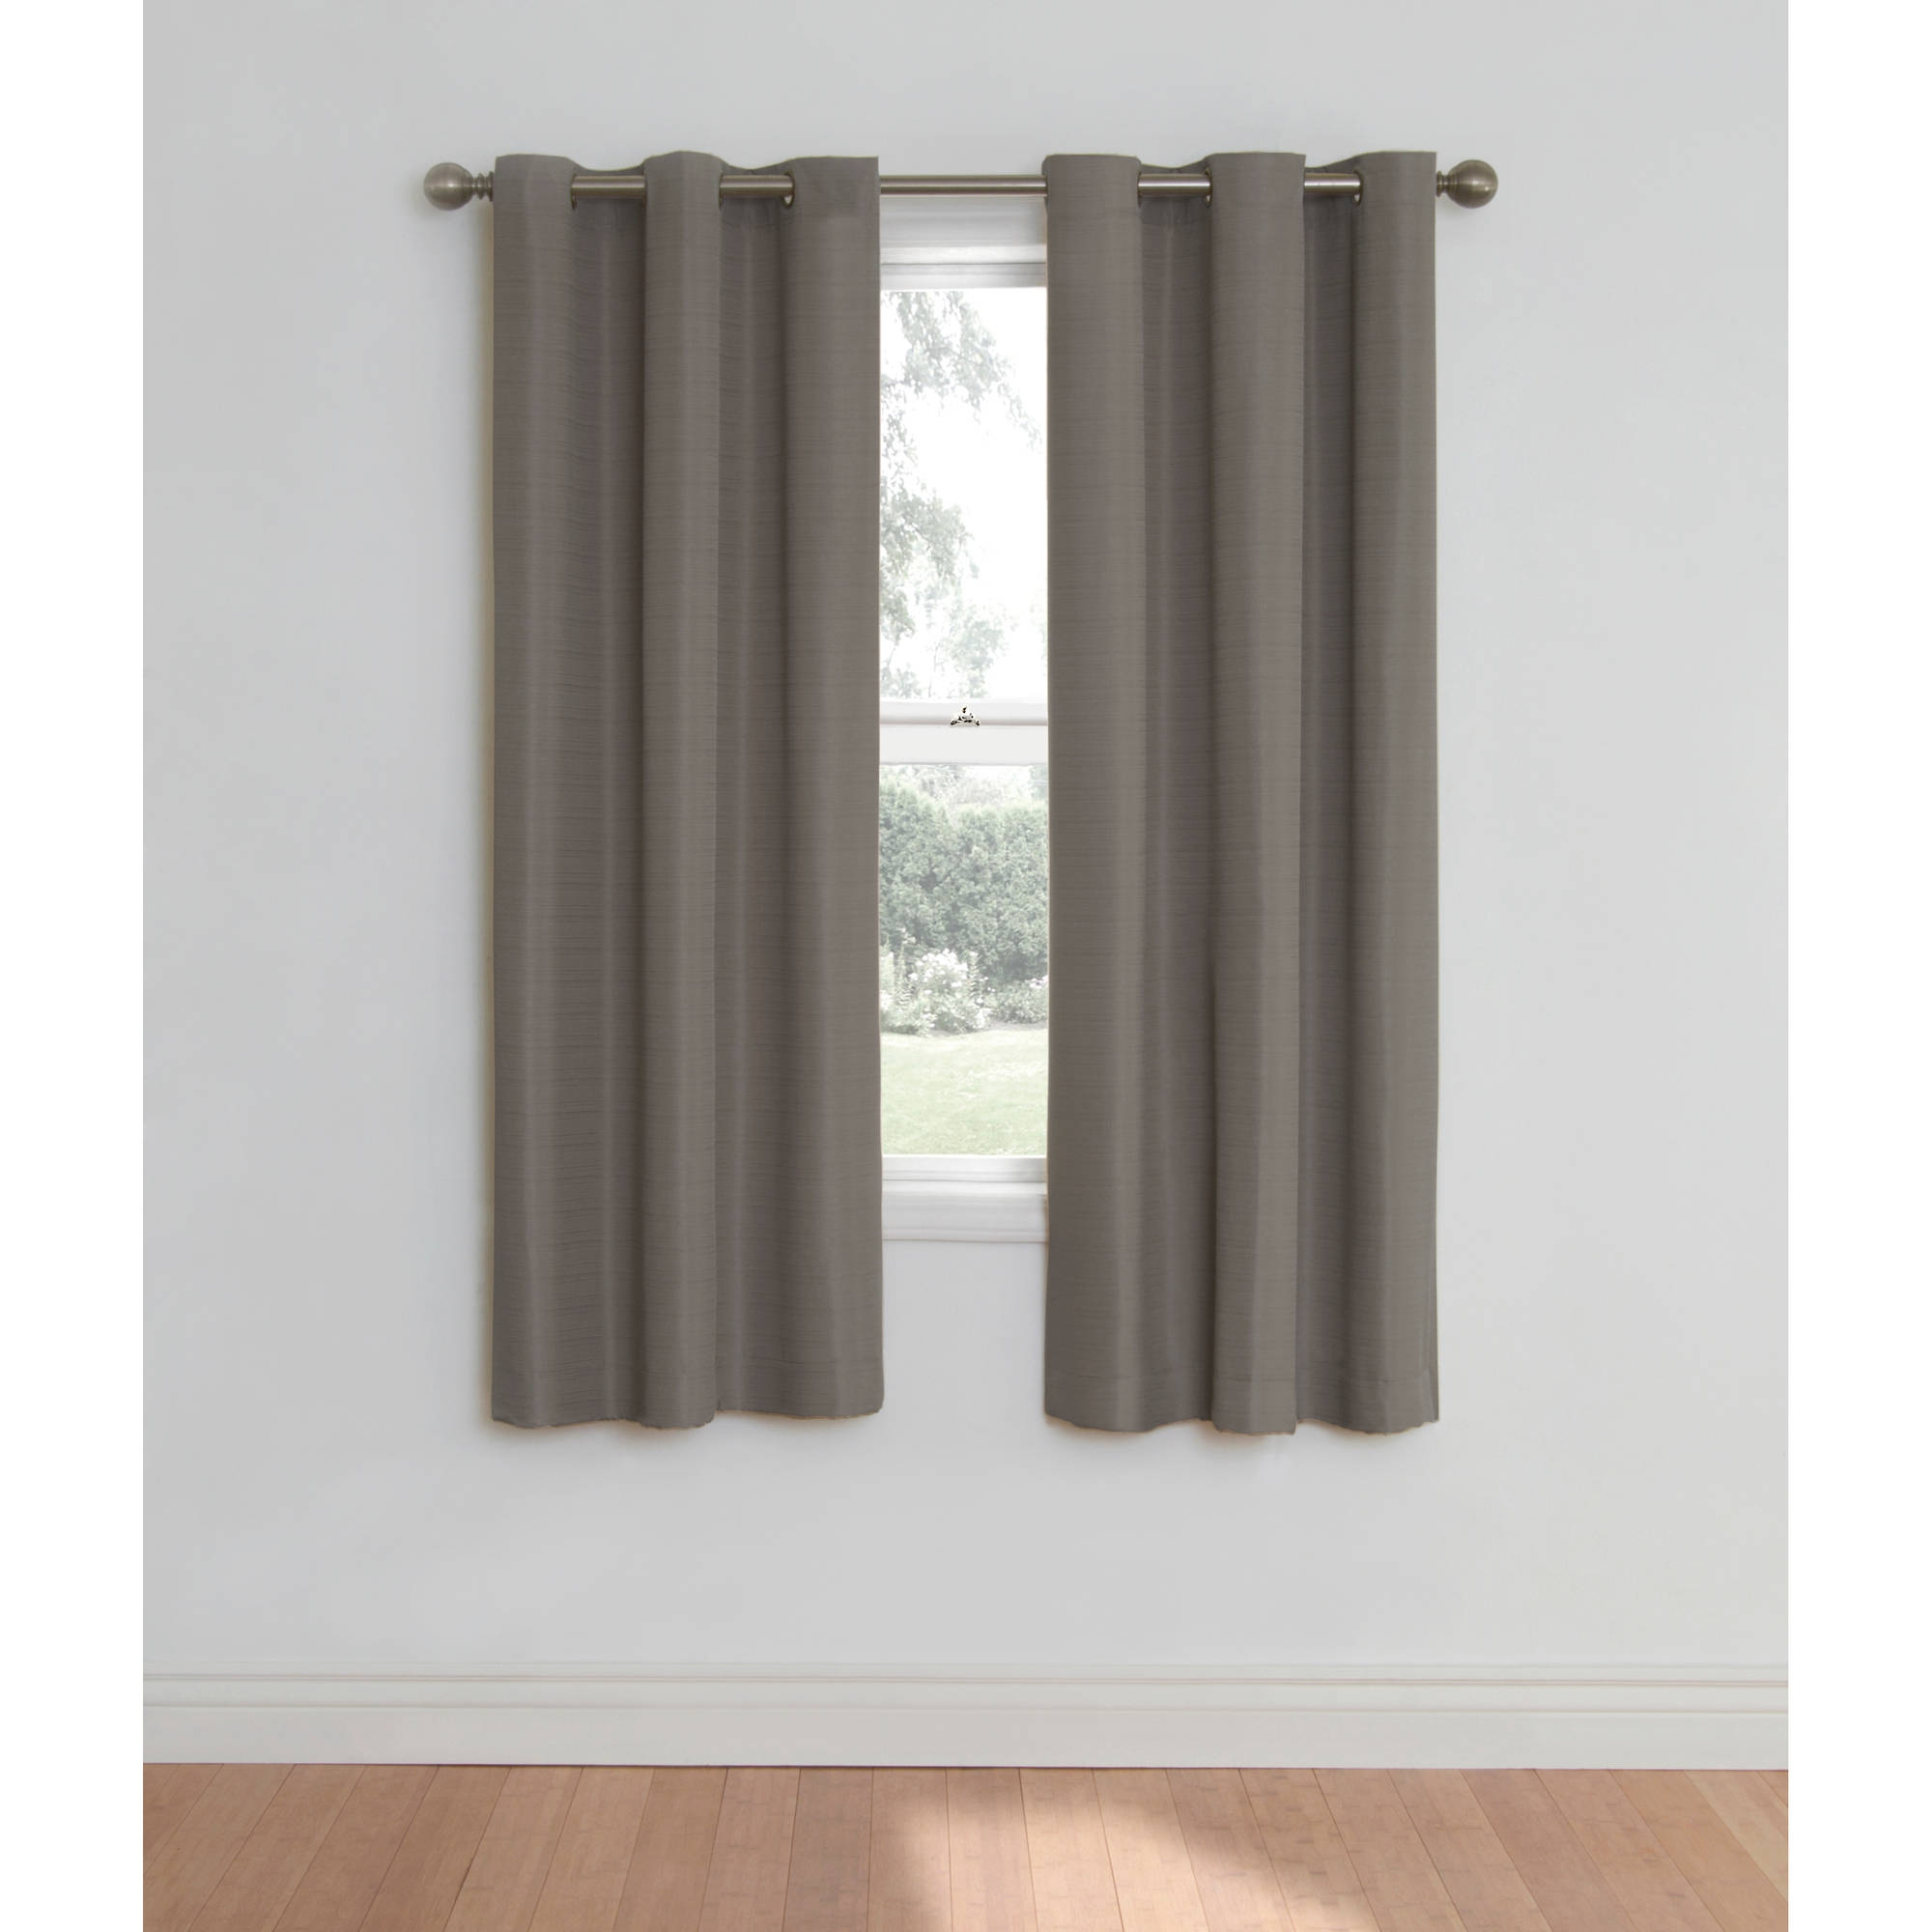 Energy Efficient Thermal Curtains With Regard To Thermal Lined Drapes (Image 8 of 15)